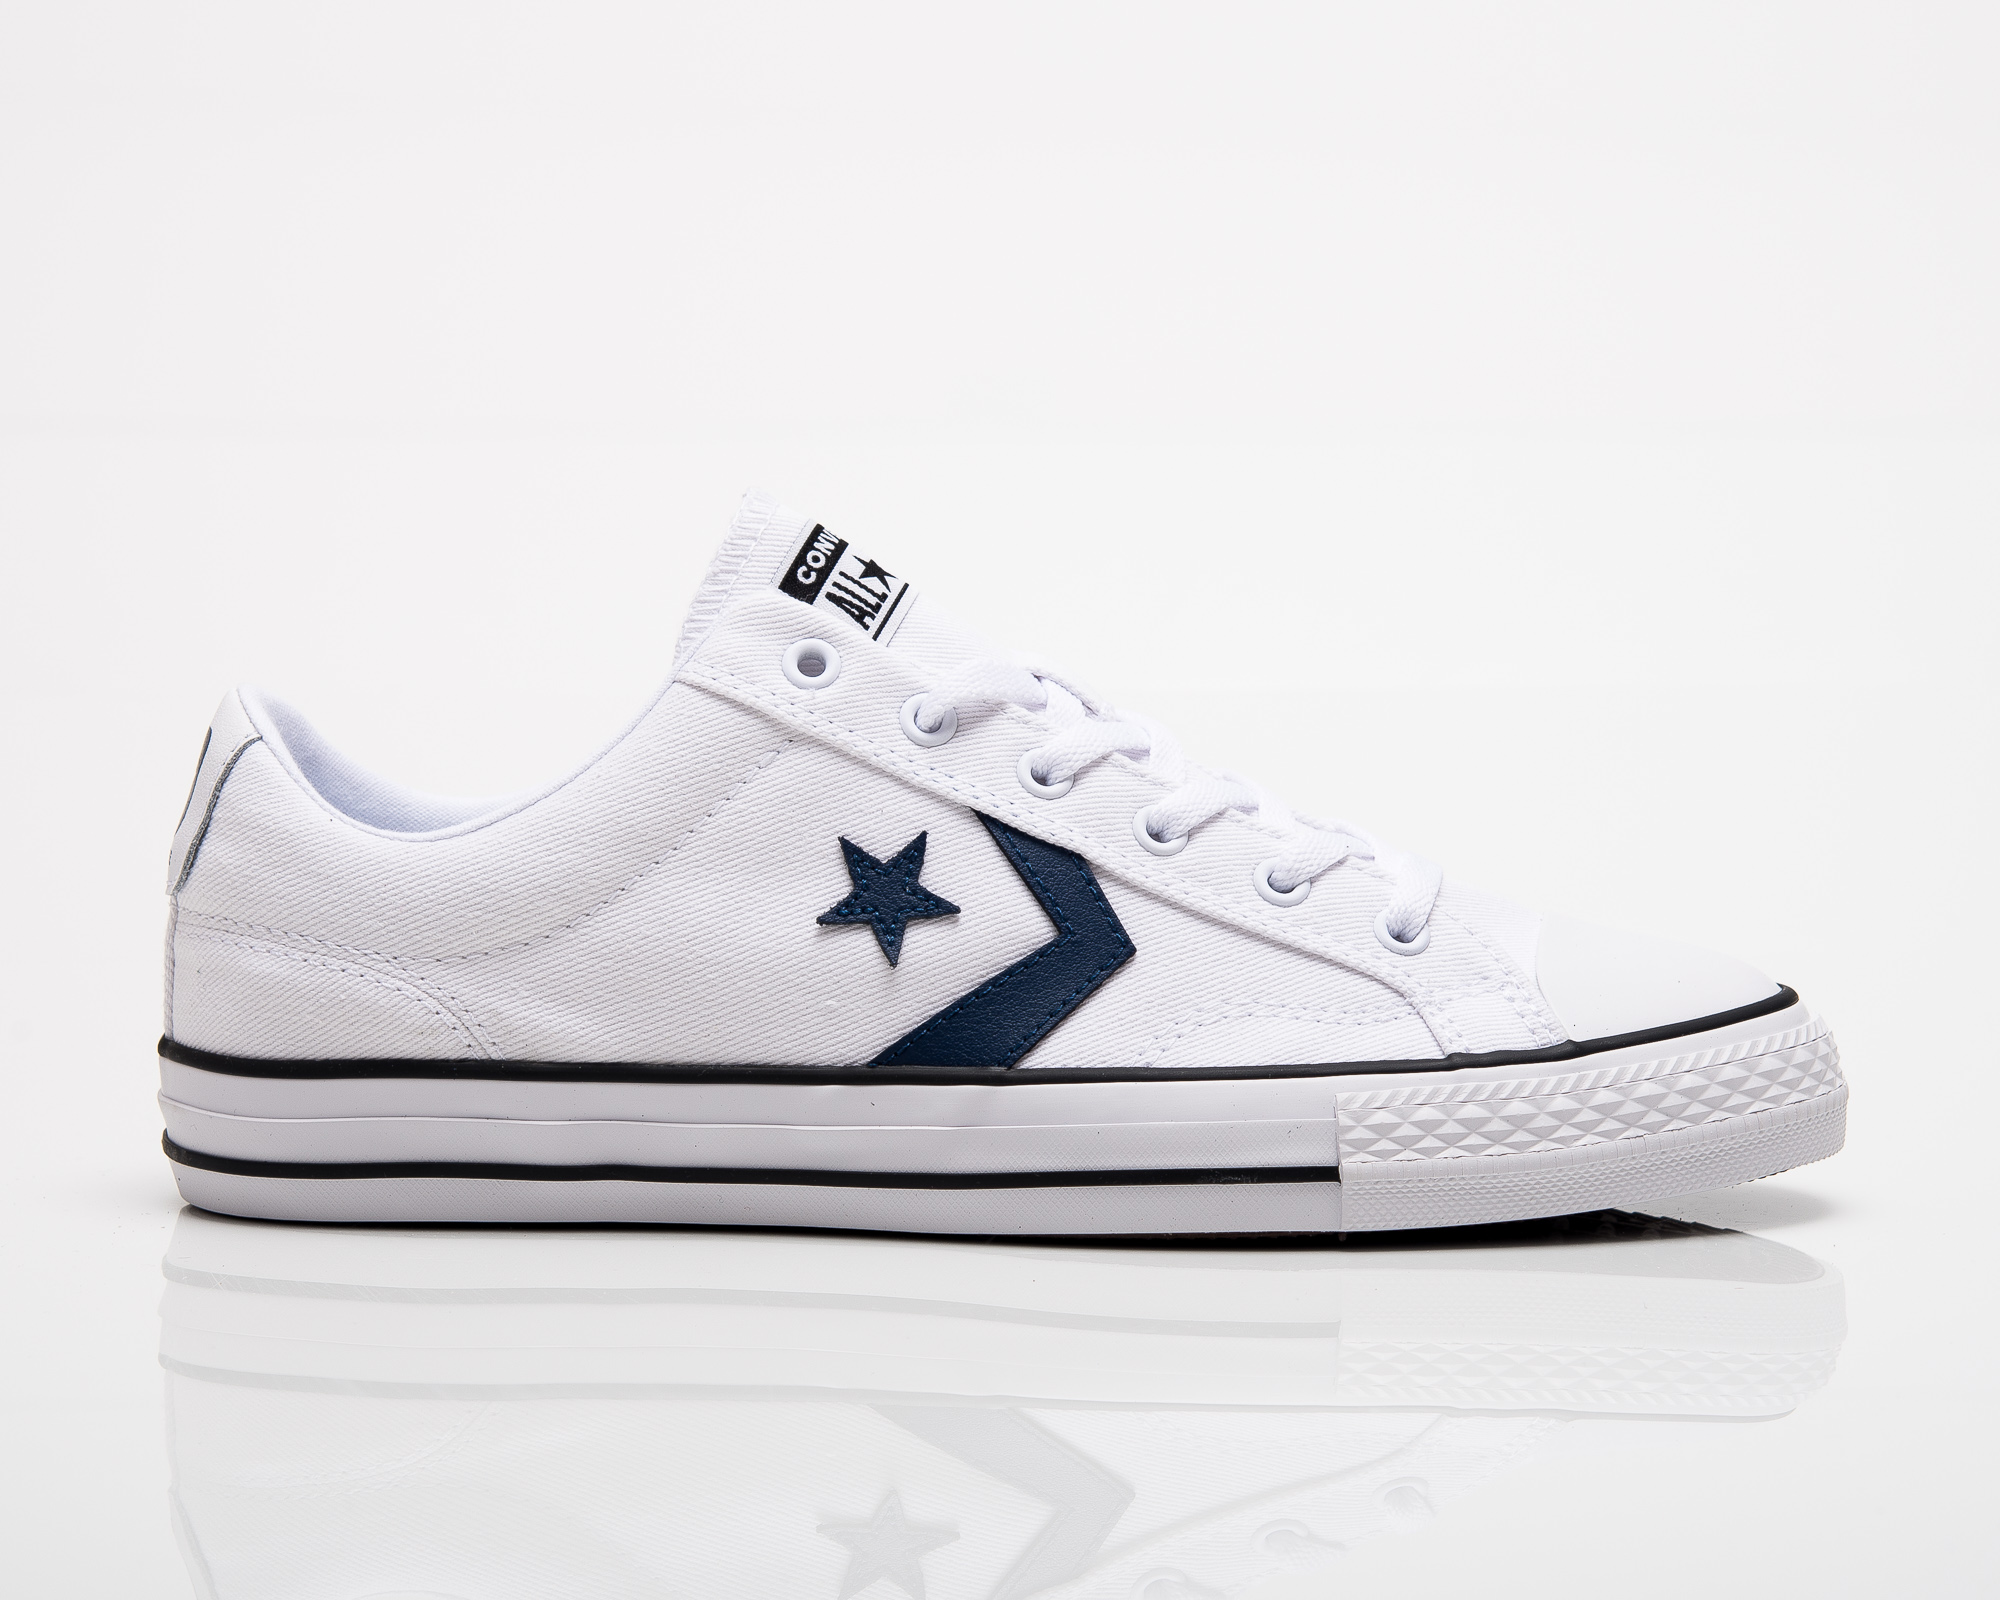 d7ceacd7f2e0 Converse Star Player Ox Summer Twill - Shoes Casual - Sporting goods ...